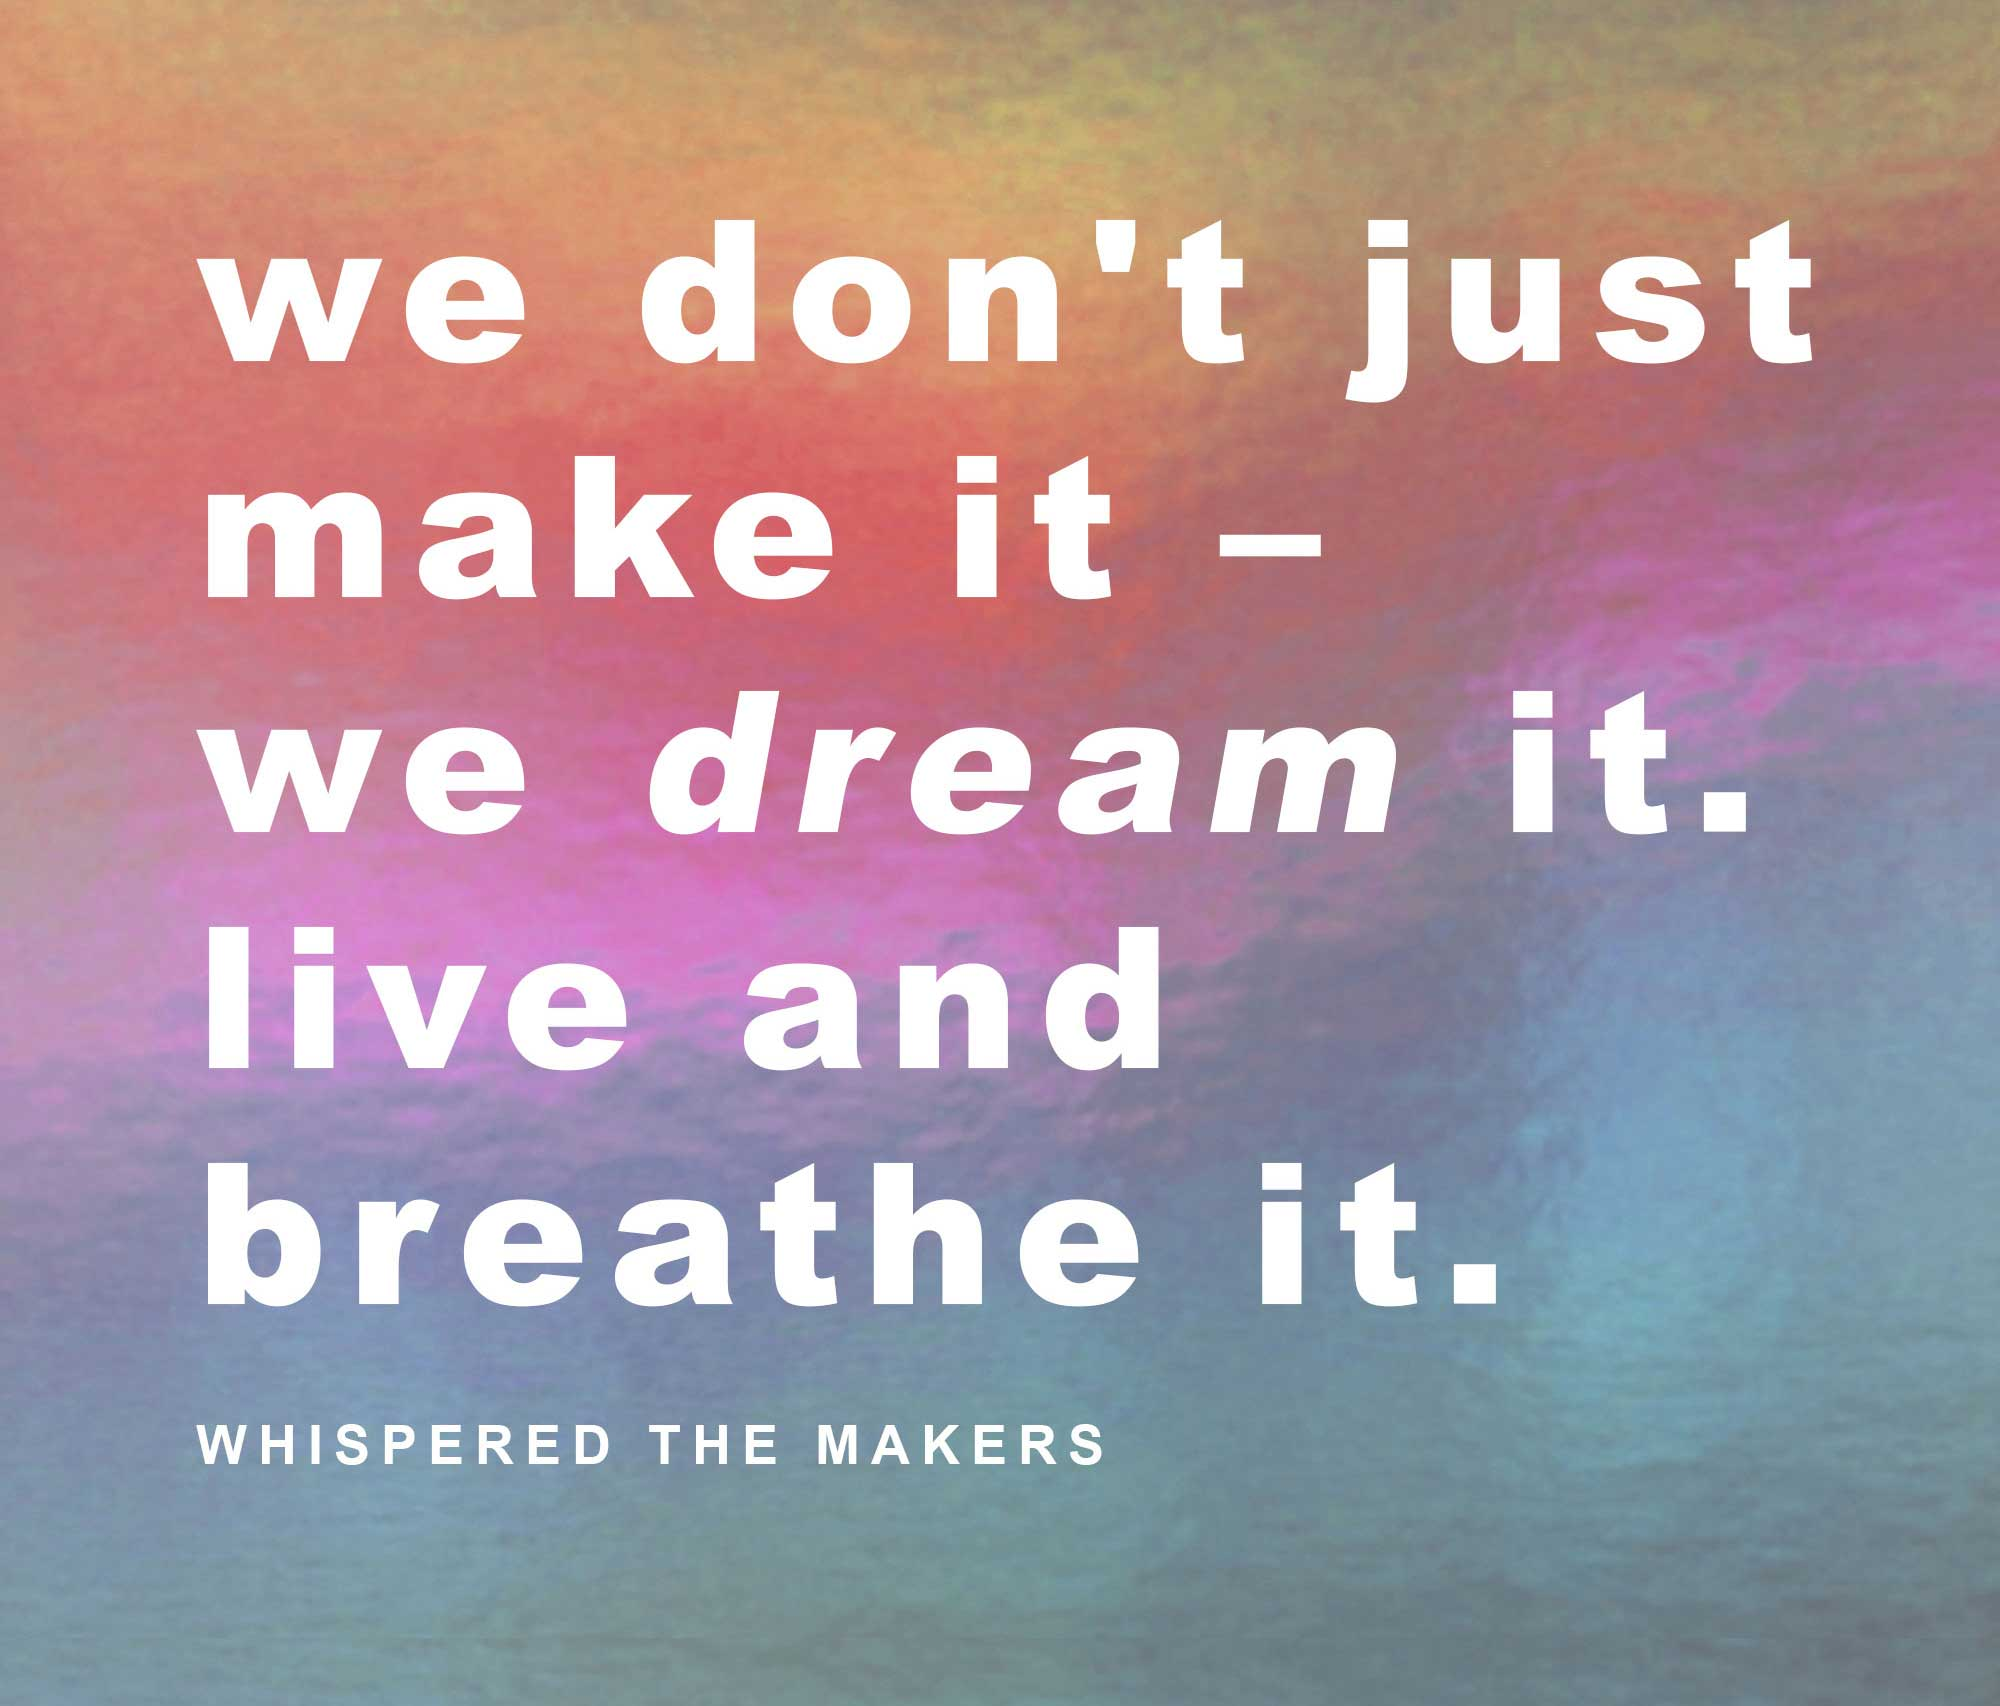 """We don't just make it – we dream it, live and breathe it"" WHISPERED THE MAKERS quote by Sonya Rothwell founder of Gallery beautiful"